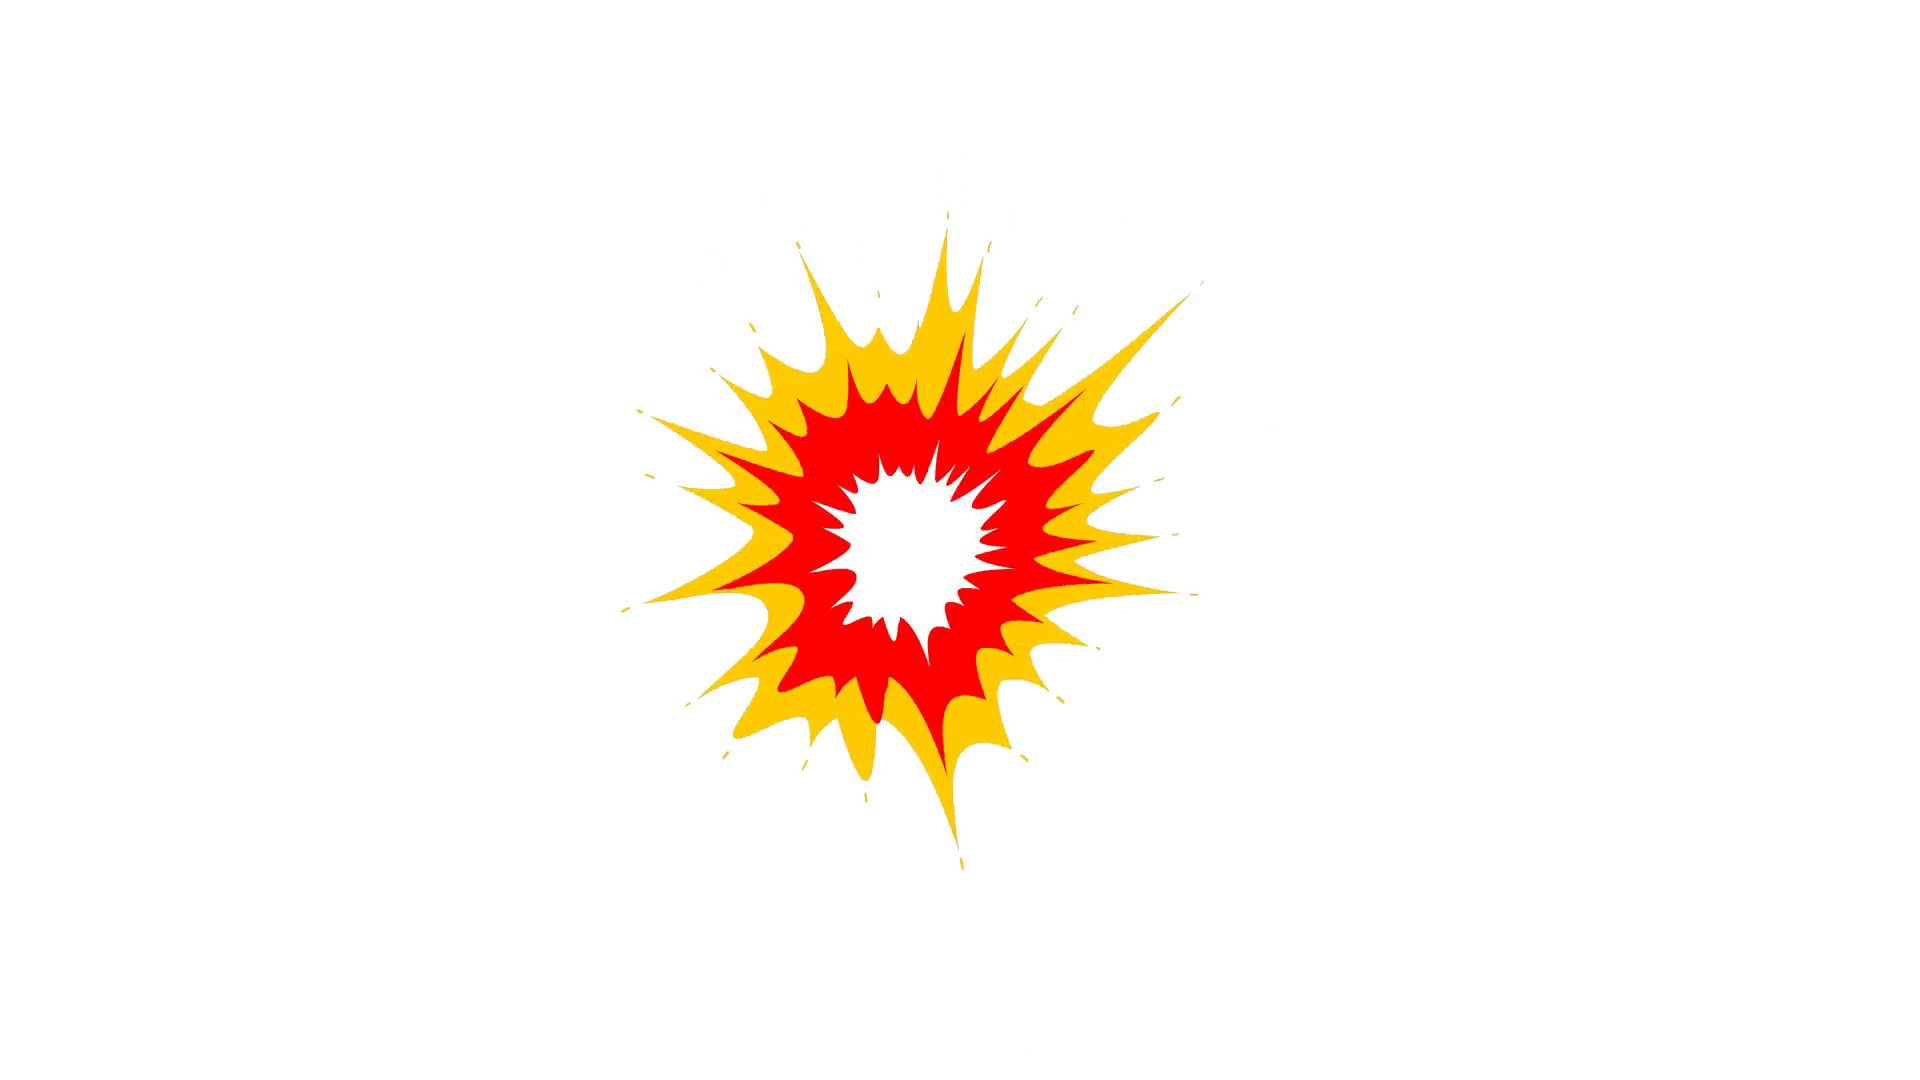 Animation of comic style explosion. Cartoon explosion Motion Background.